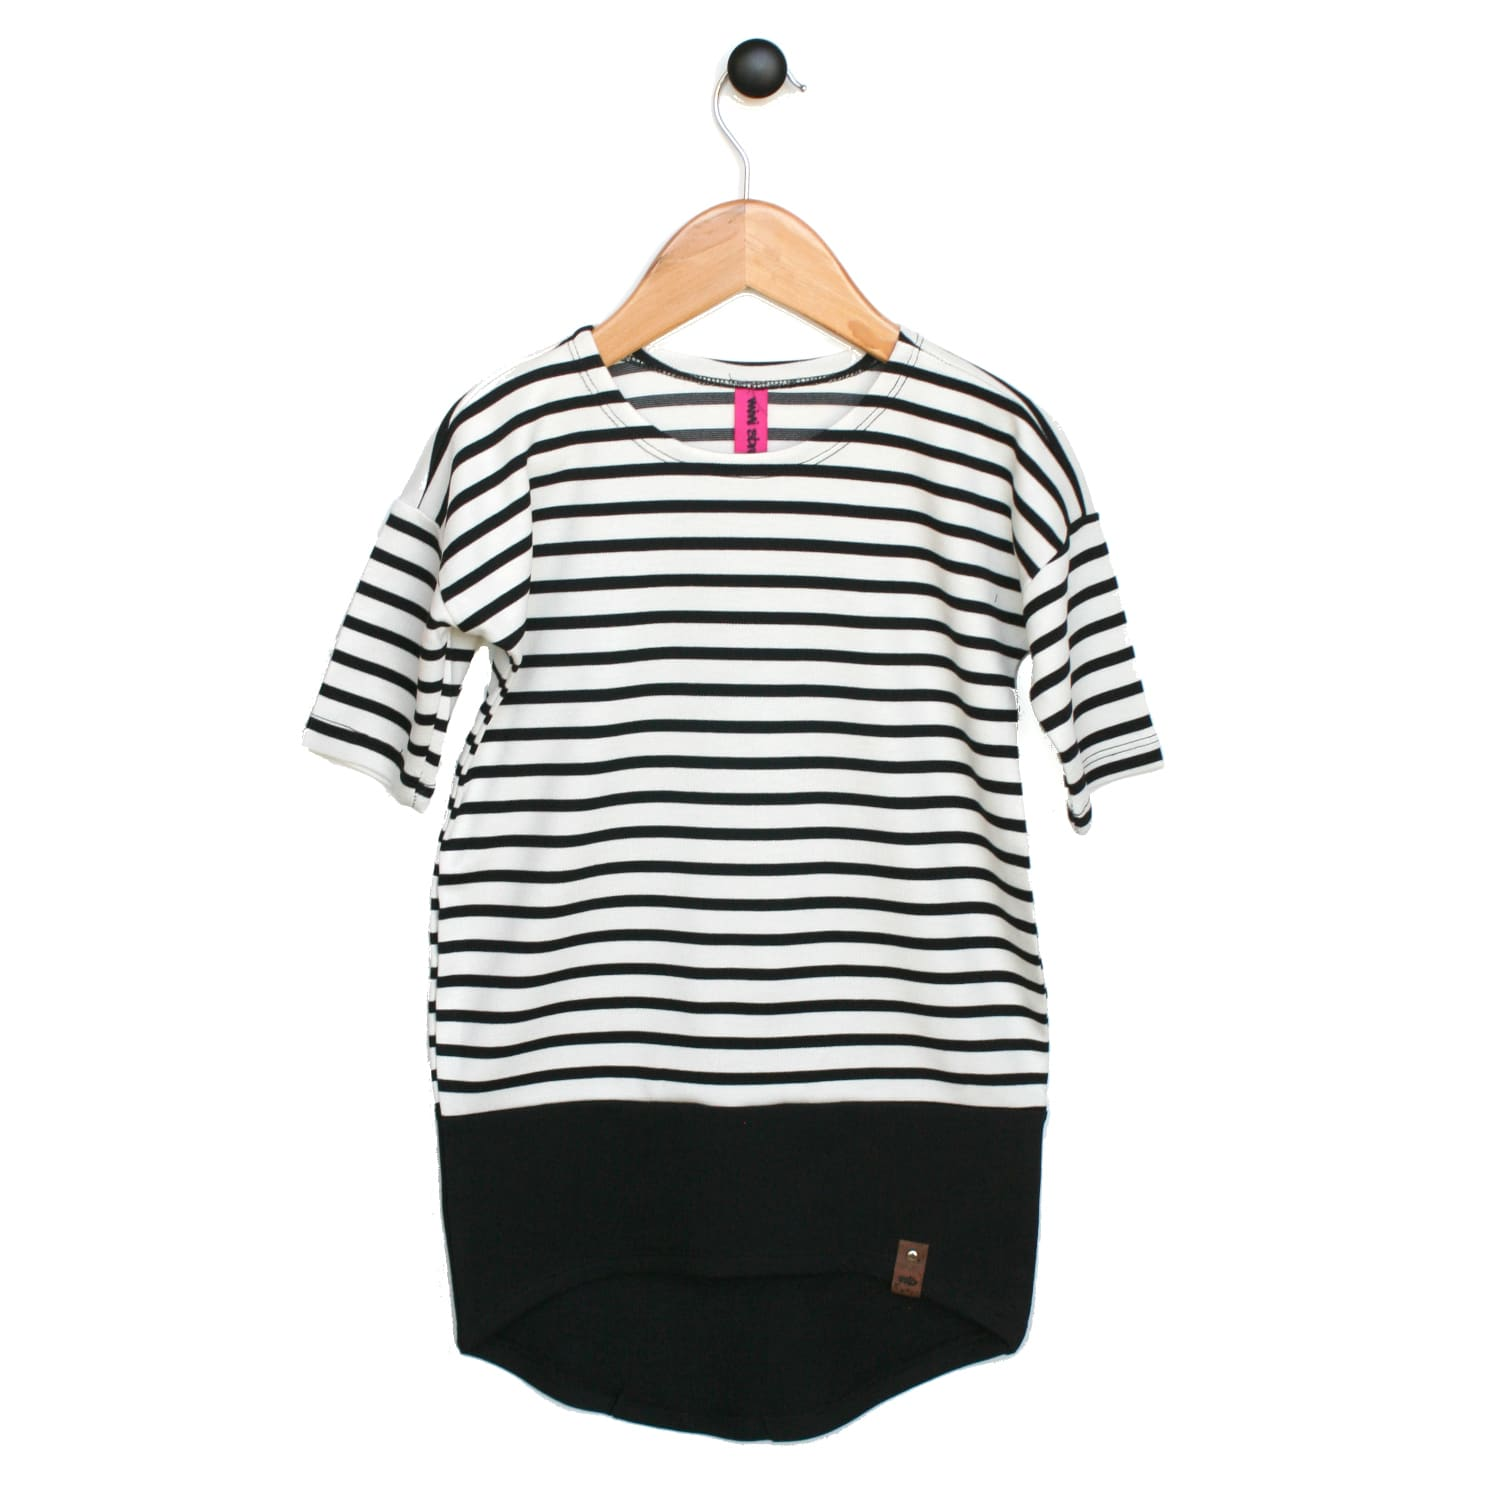 Taylor Woman Dress - Black or White Stripe 3/4 Sleeve